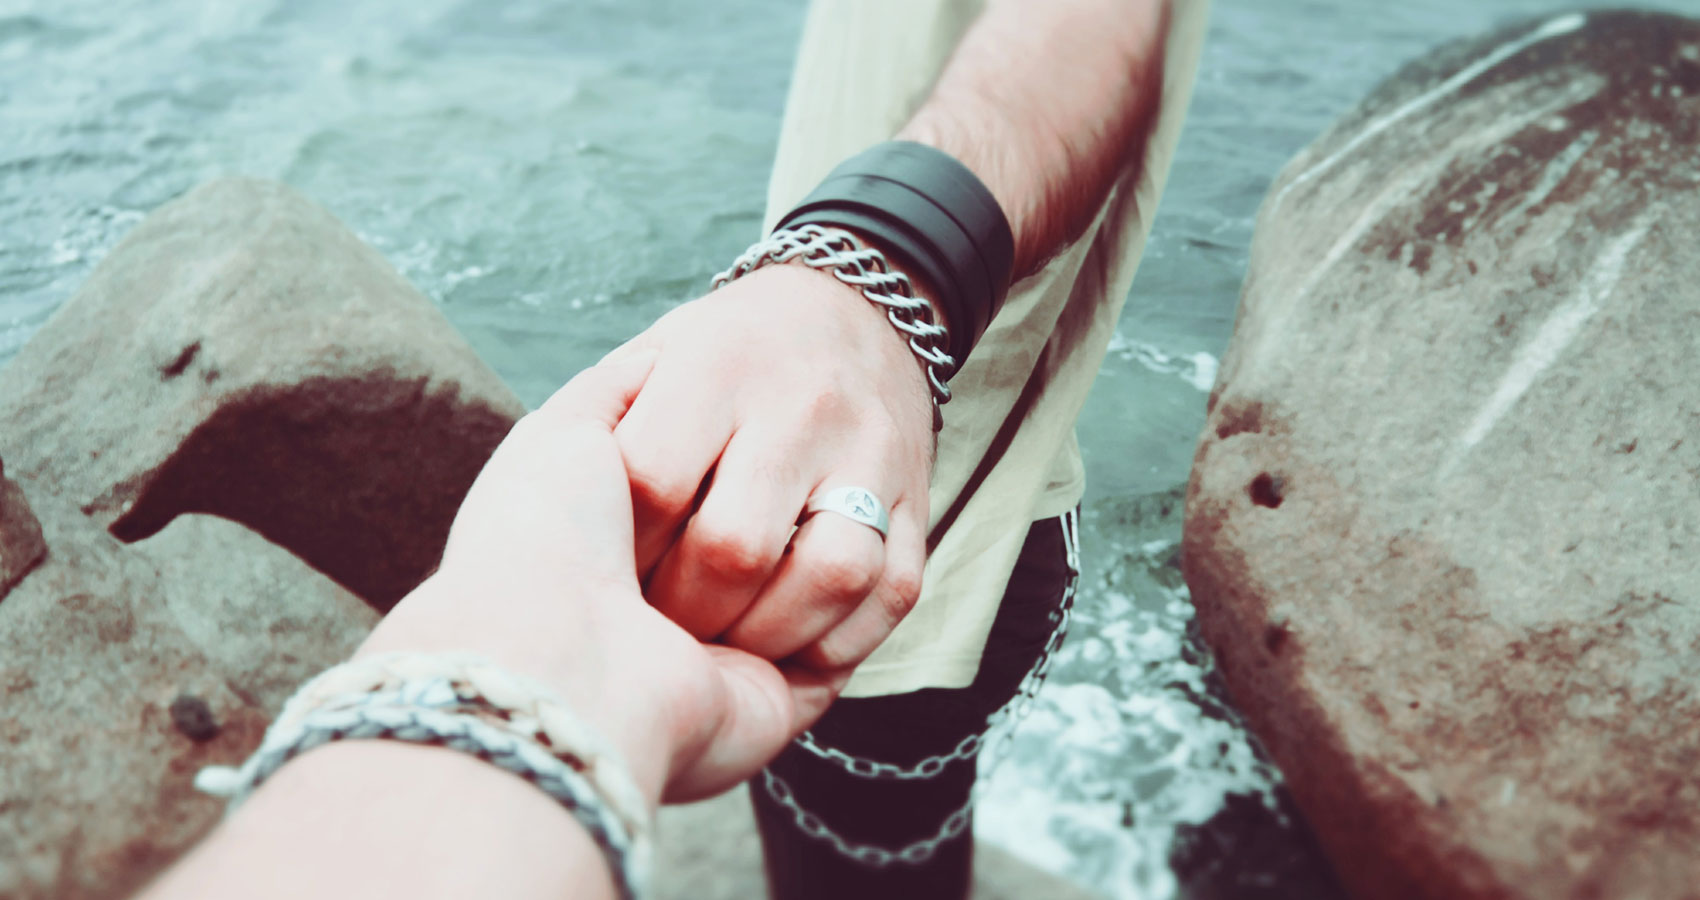 This Is I, Holding Your Hand, written by thePoeticpiper at Spillwords.com